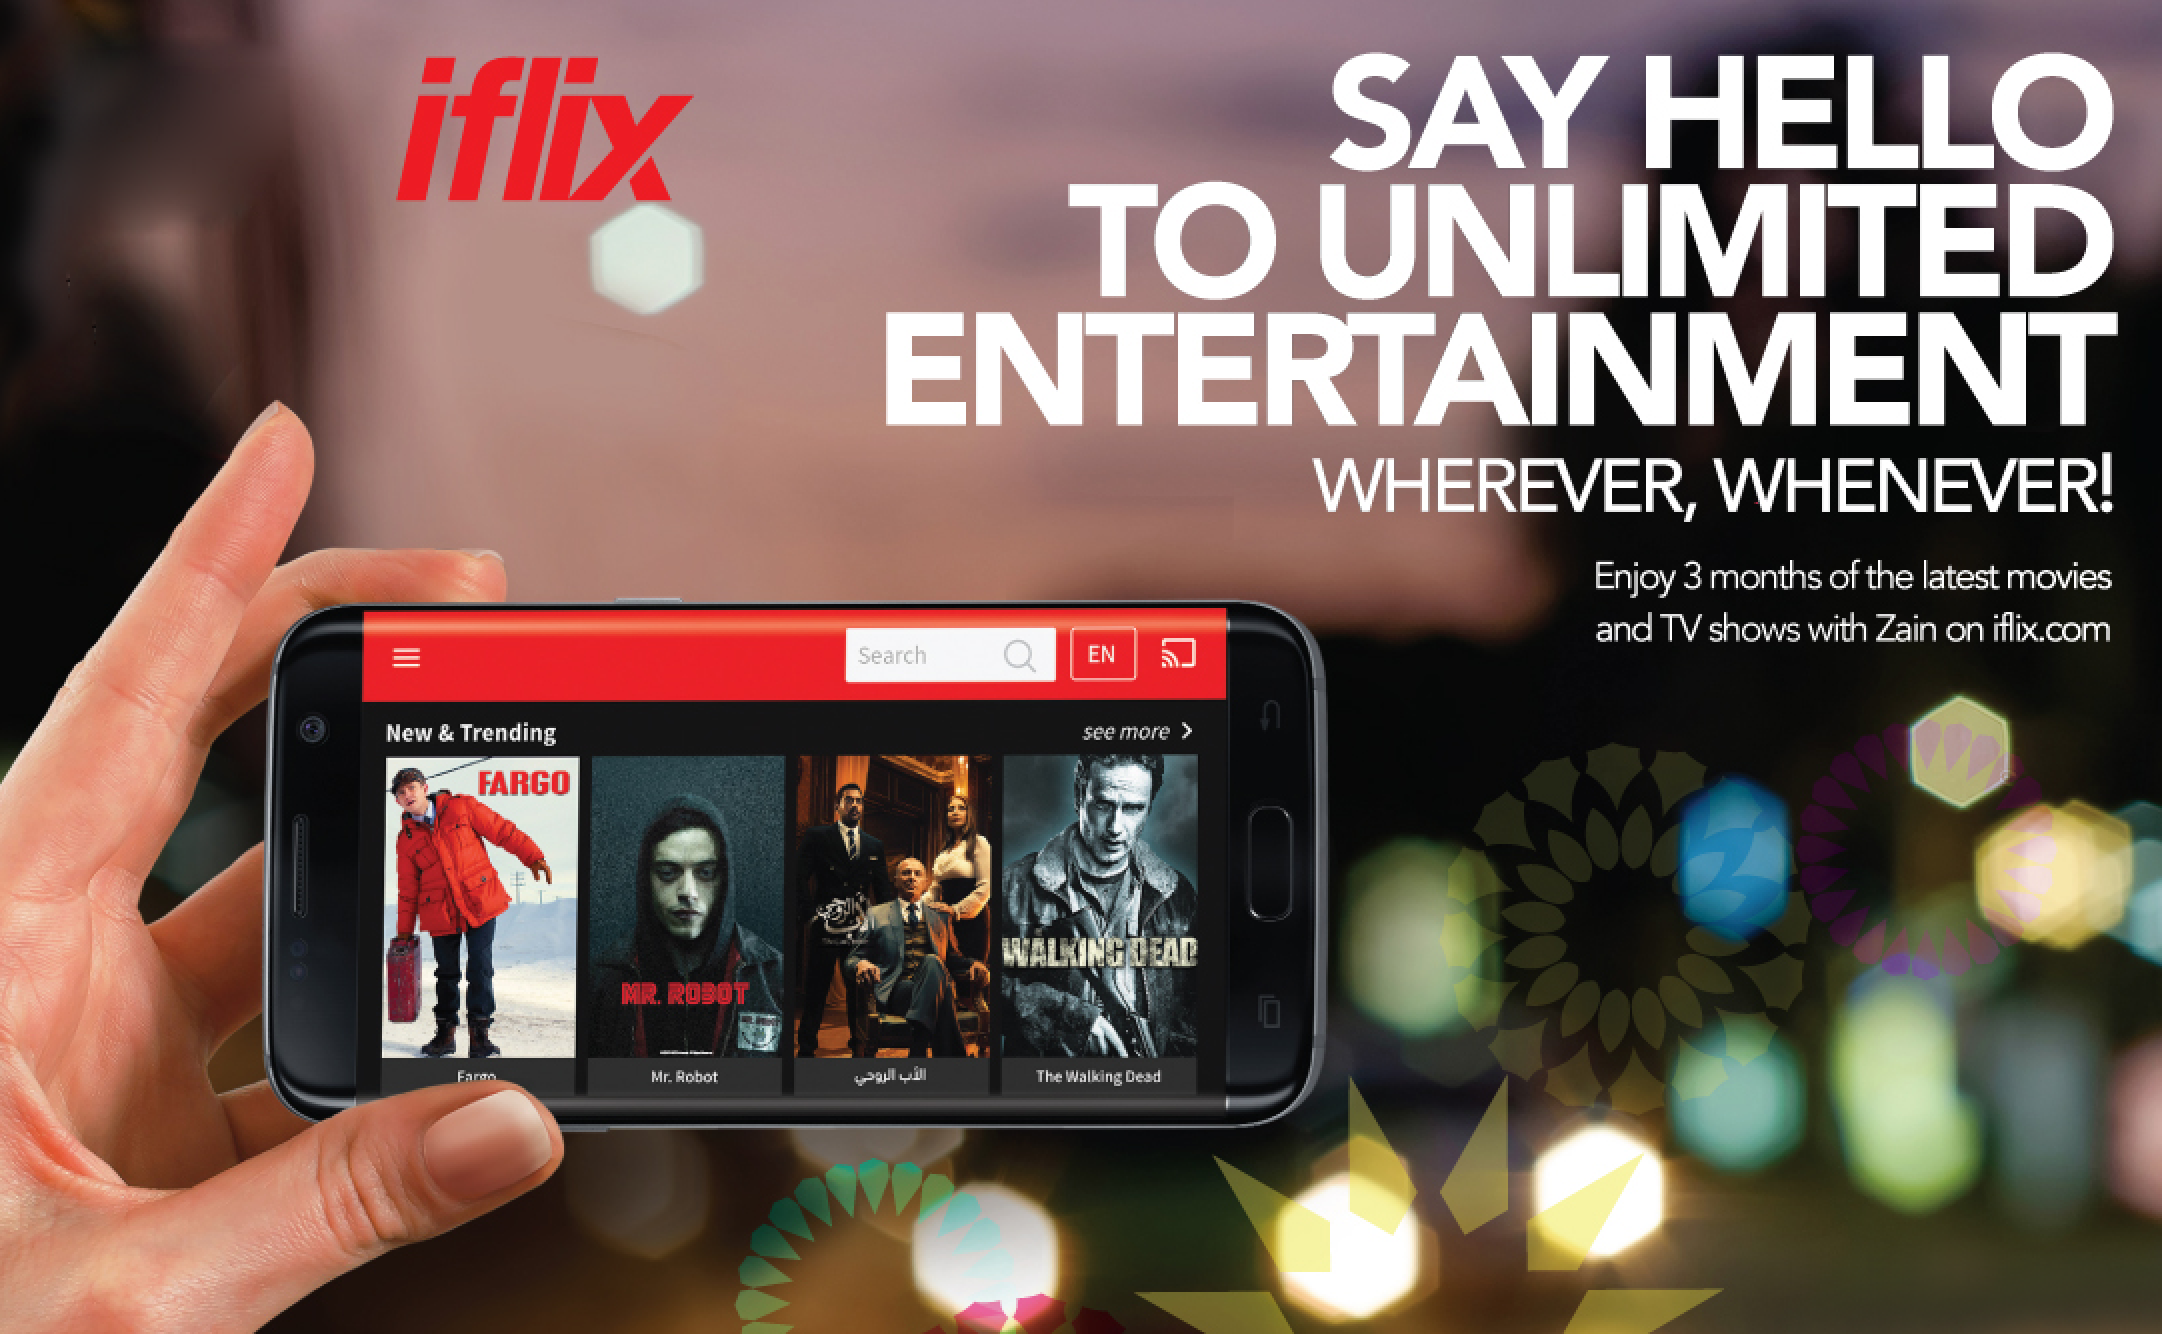 Commercial ad for iflix - say hello to unlimited entertainment